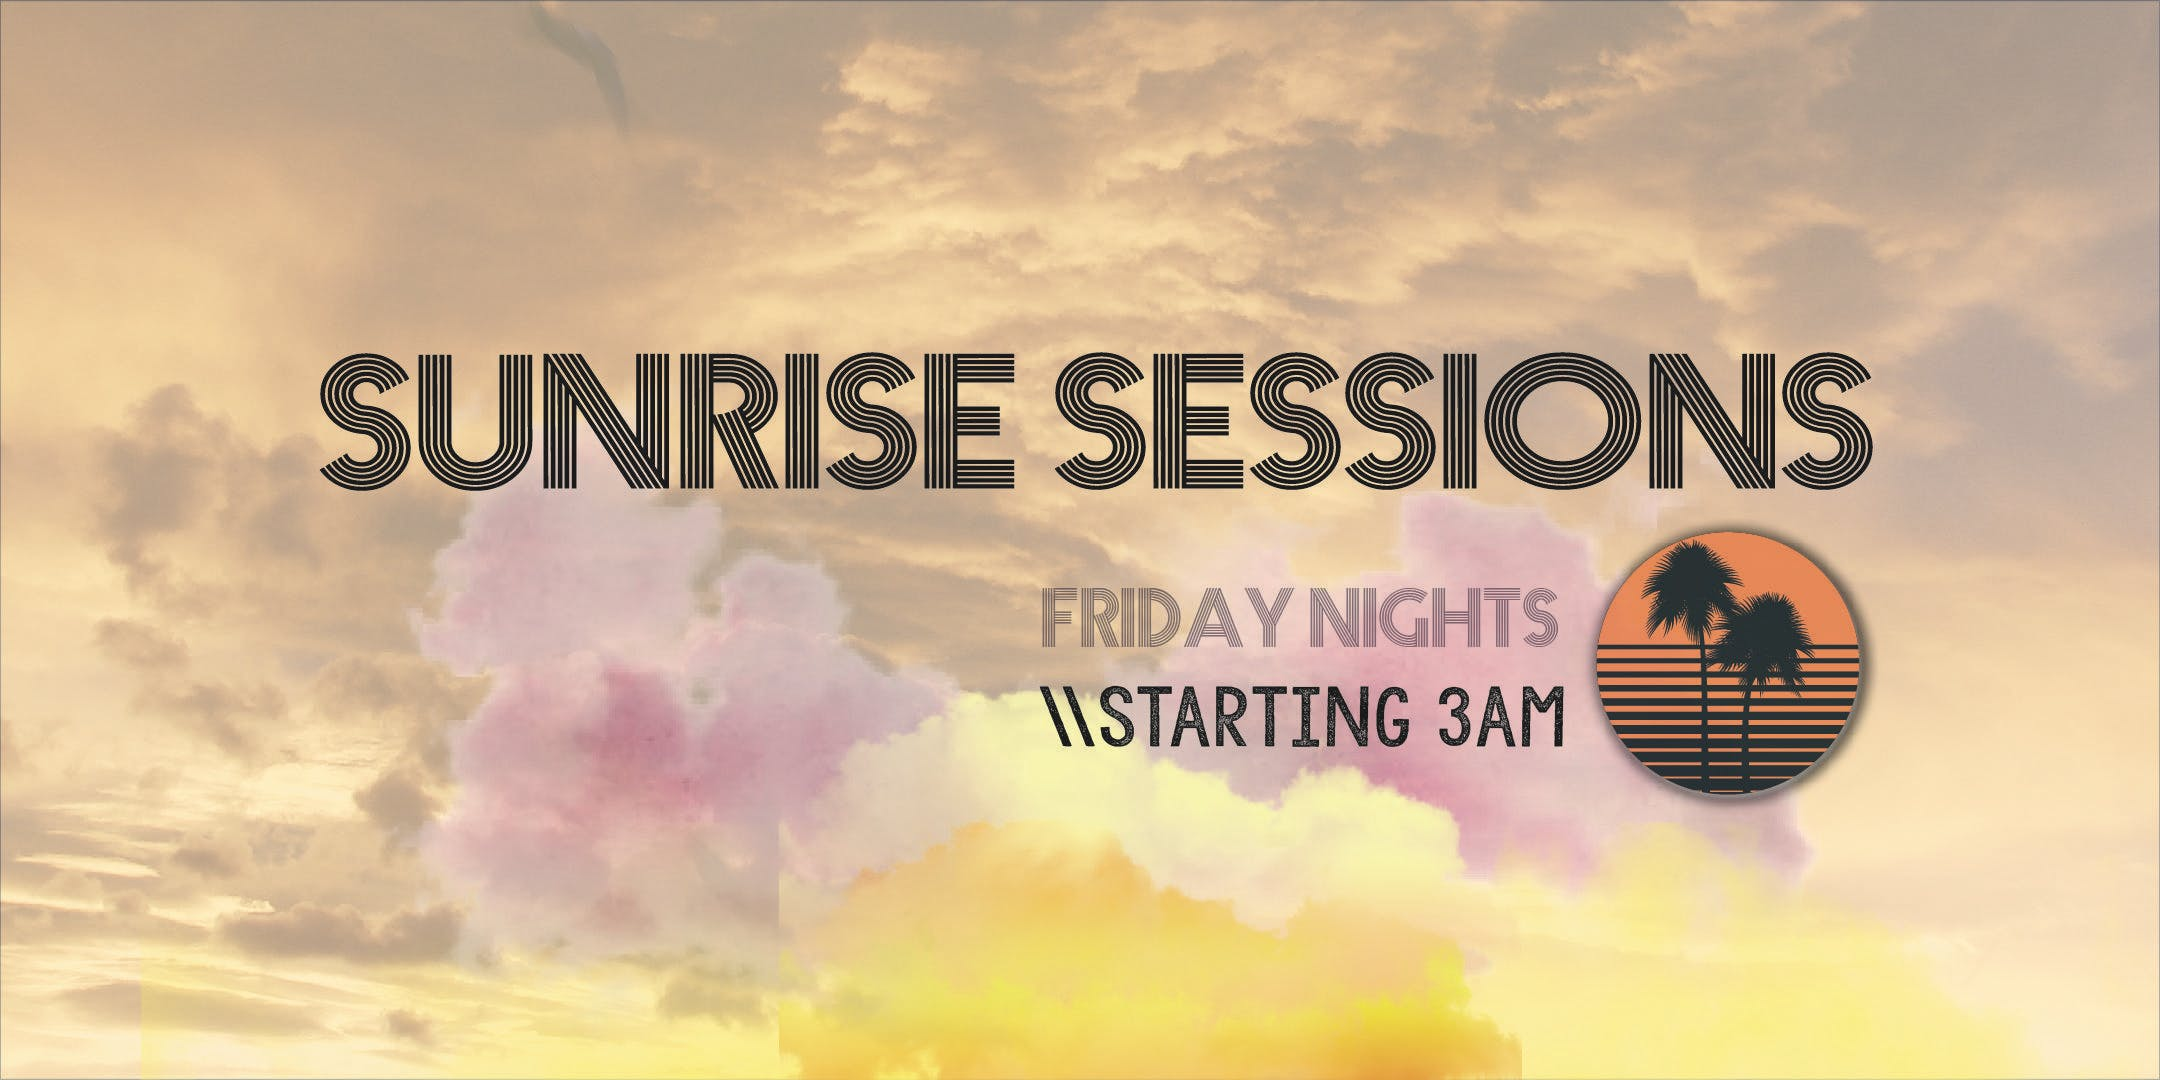 Sunrise Sessions on The River//Afterhours, Jean Pierre – Miami – Jul